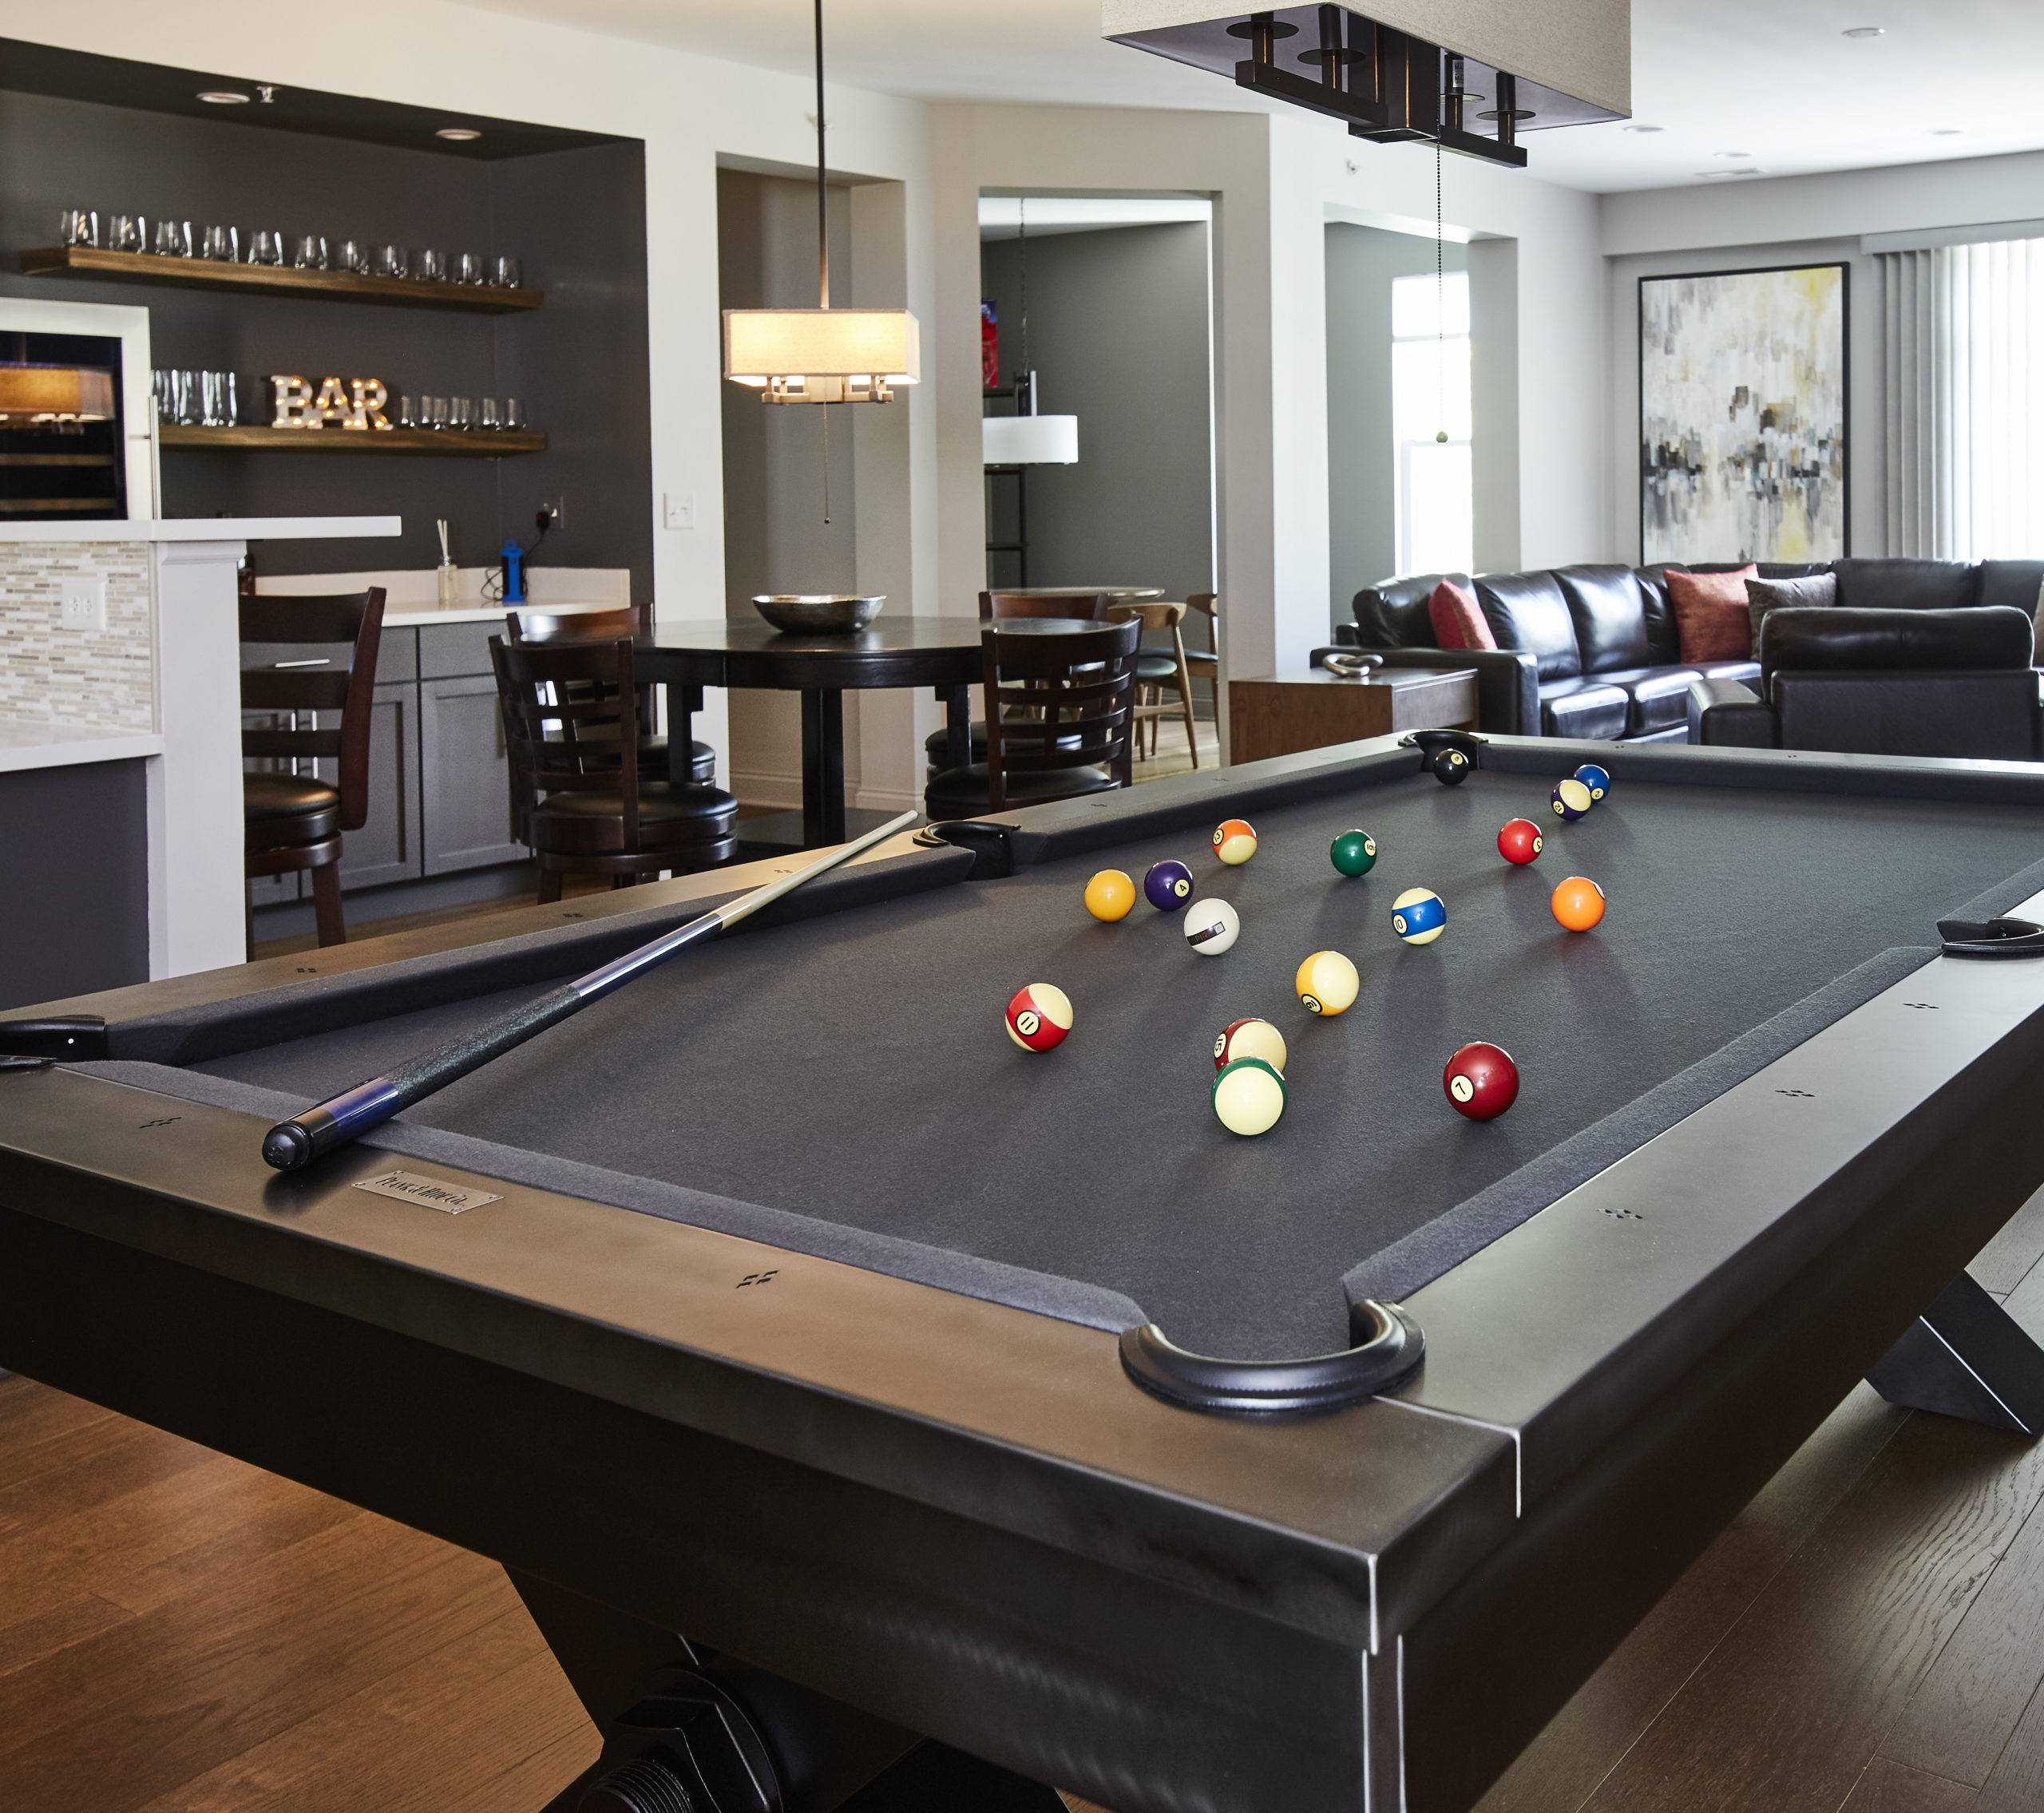 A pool table is prominently displayed with a home bar and leather sofa is featured in the background.